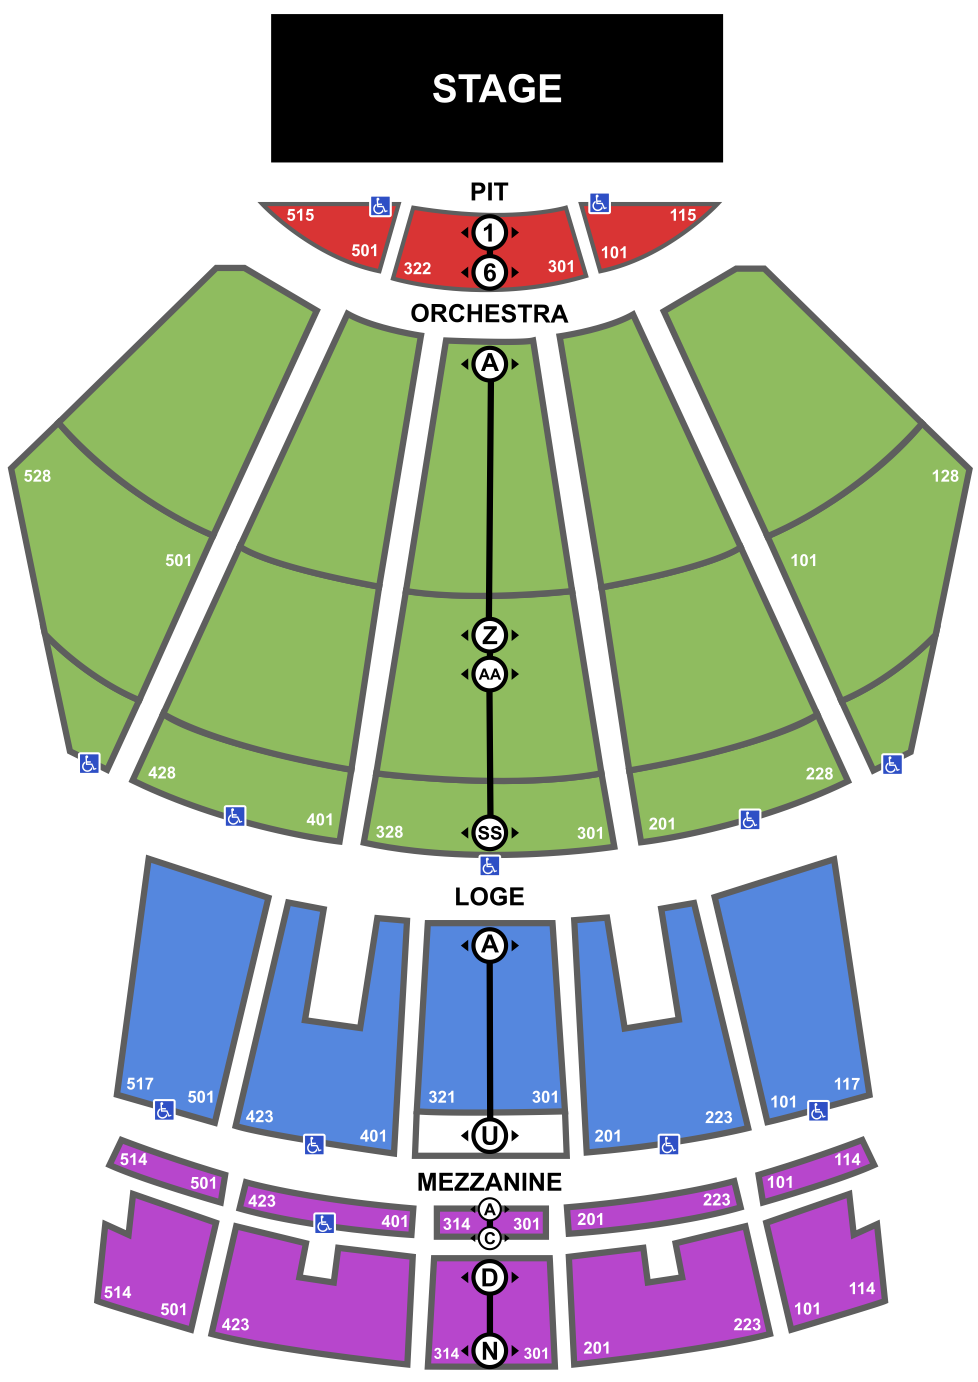 Microsoft Theater Seating Chart. Stage, Pit, Orchestra, Loge, Mezzanine. Full Description Below